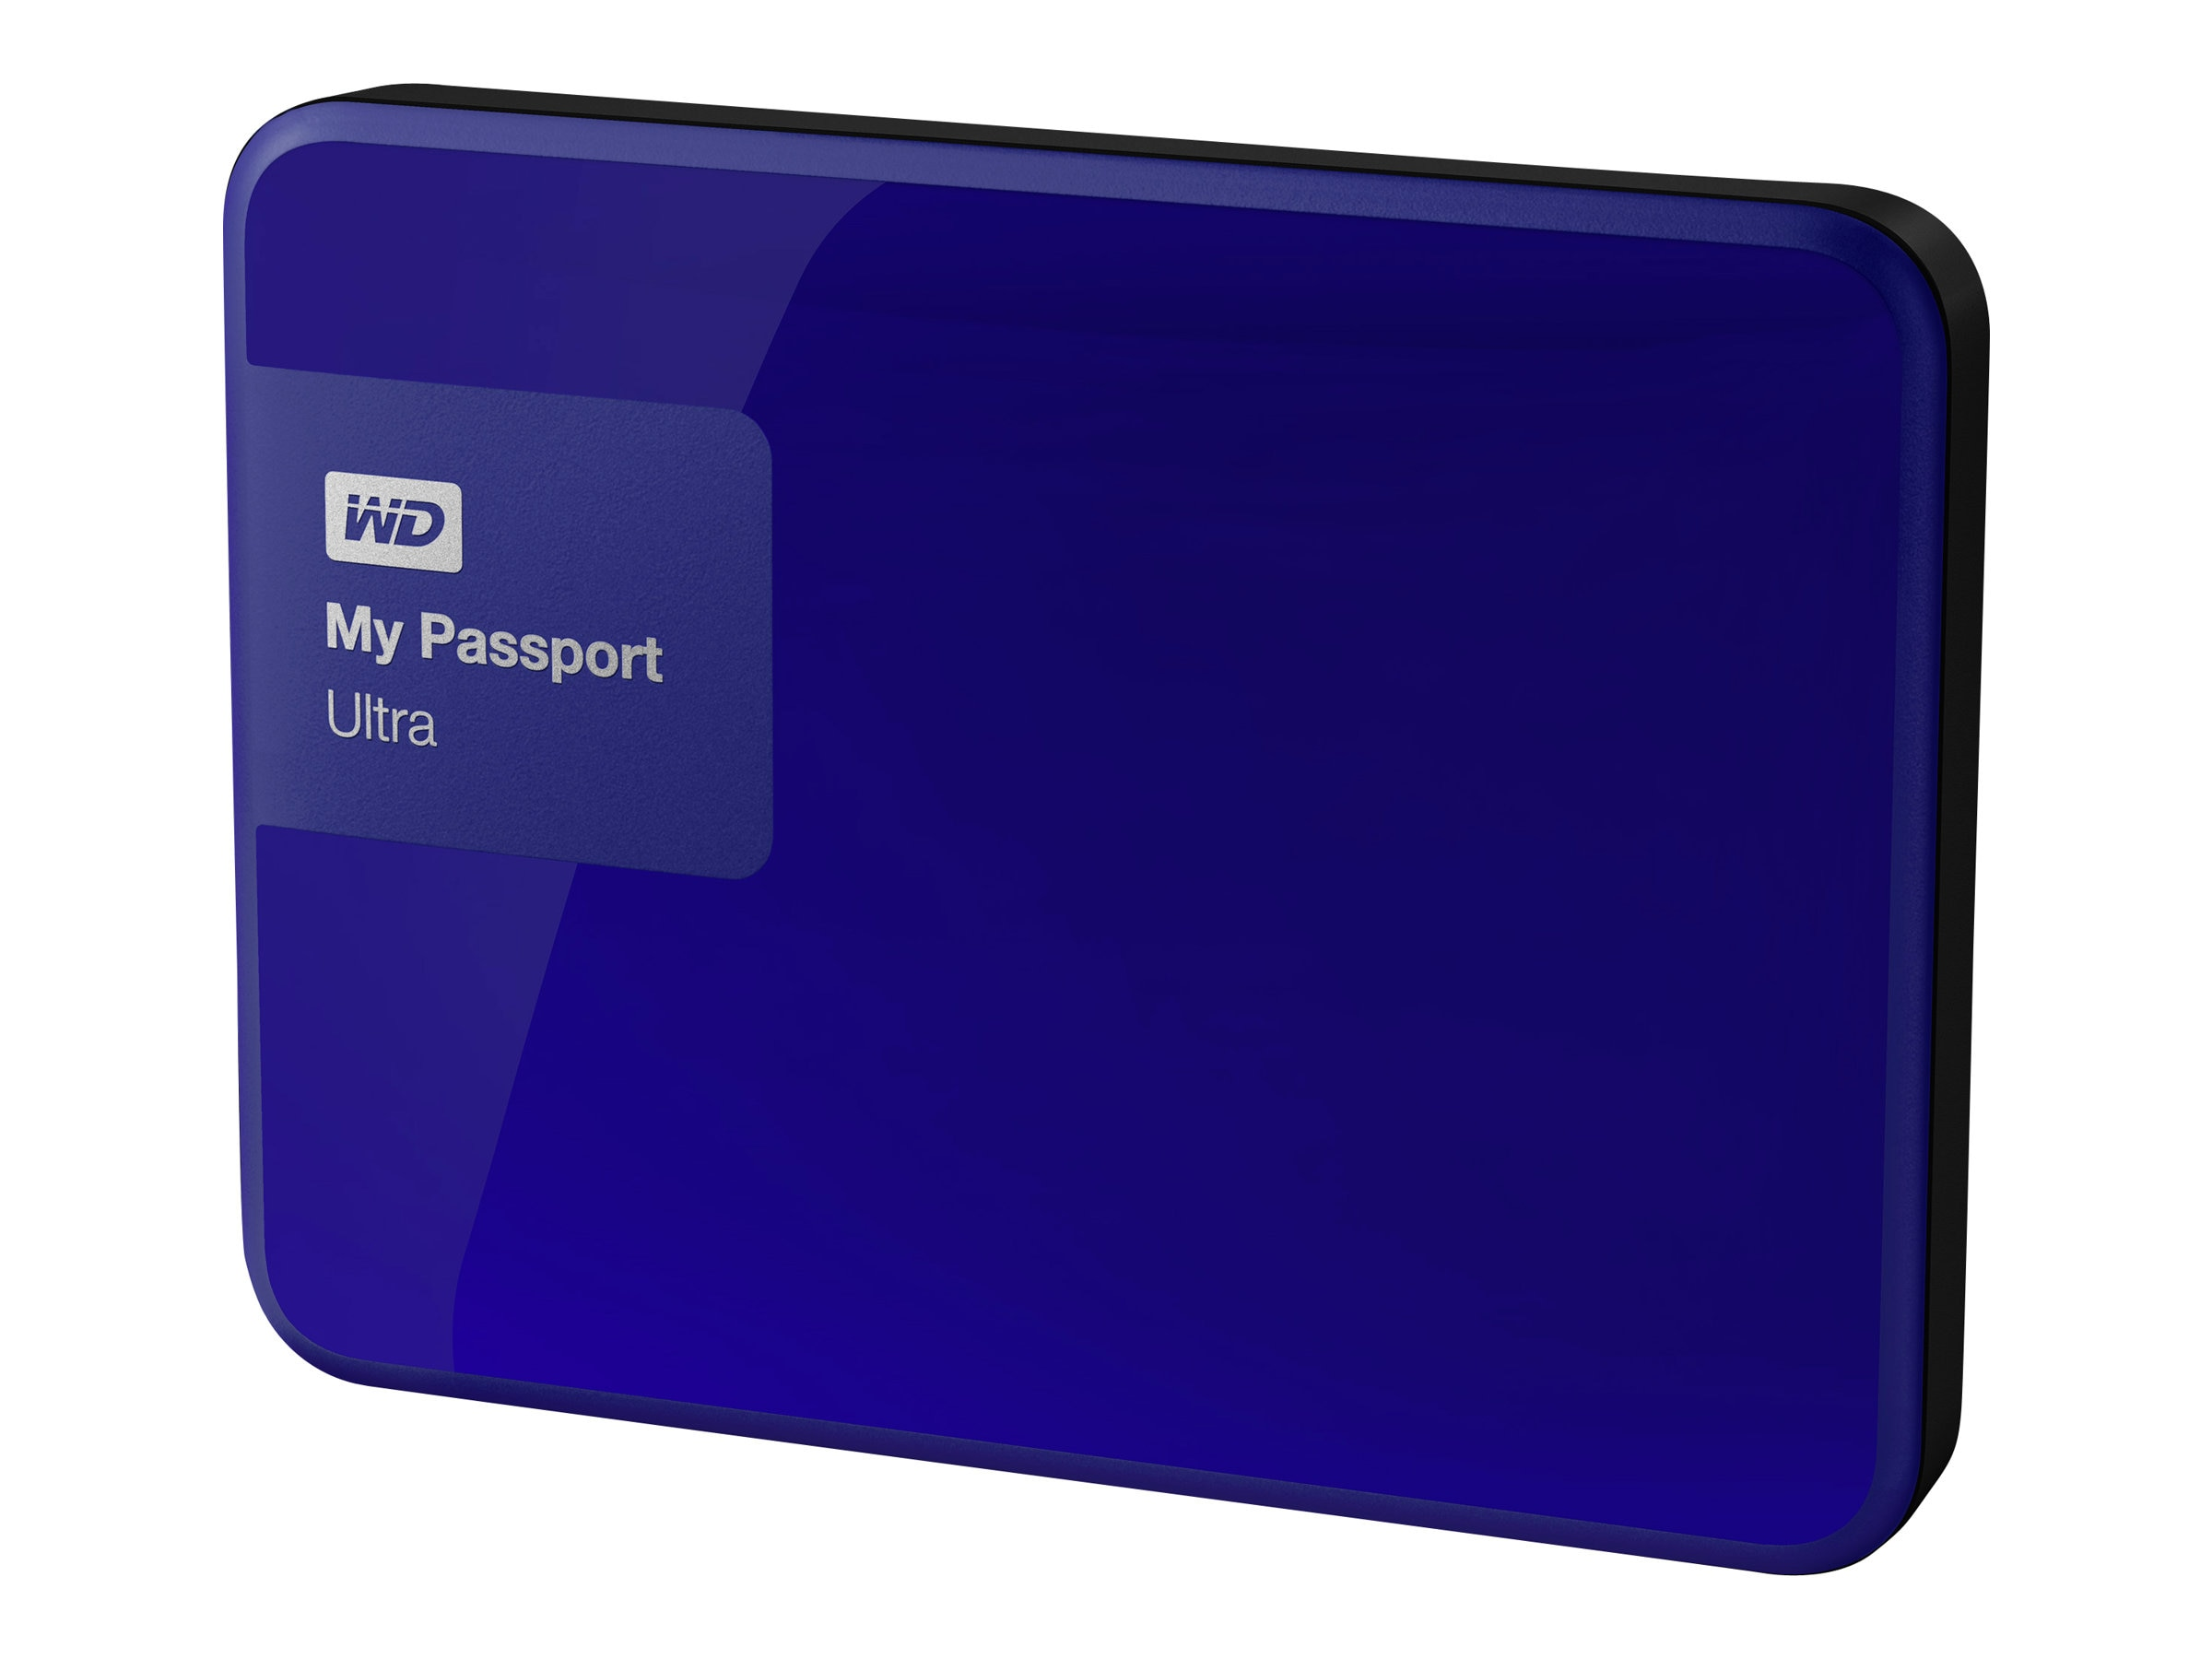 WD 2TB My Passport Ultra Portable Hard Drive - Blue, WDBBKD0020BBL-NESN, 21089091, Hard Drives - External